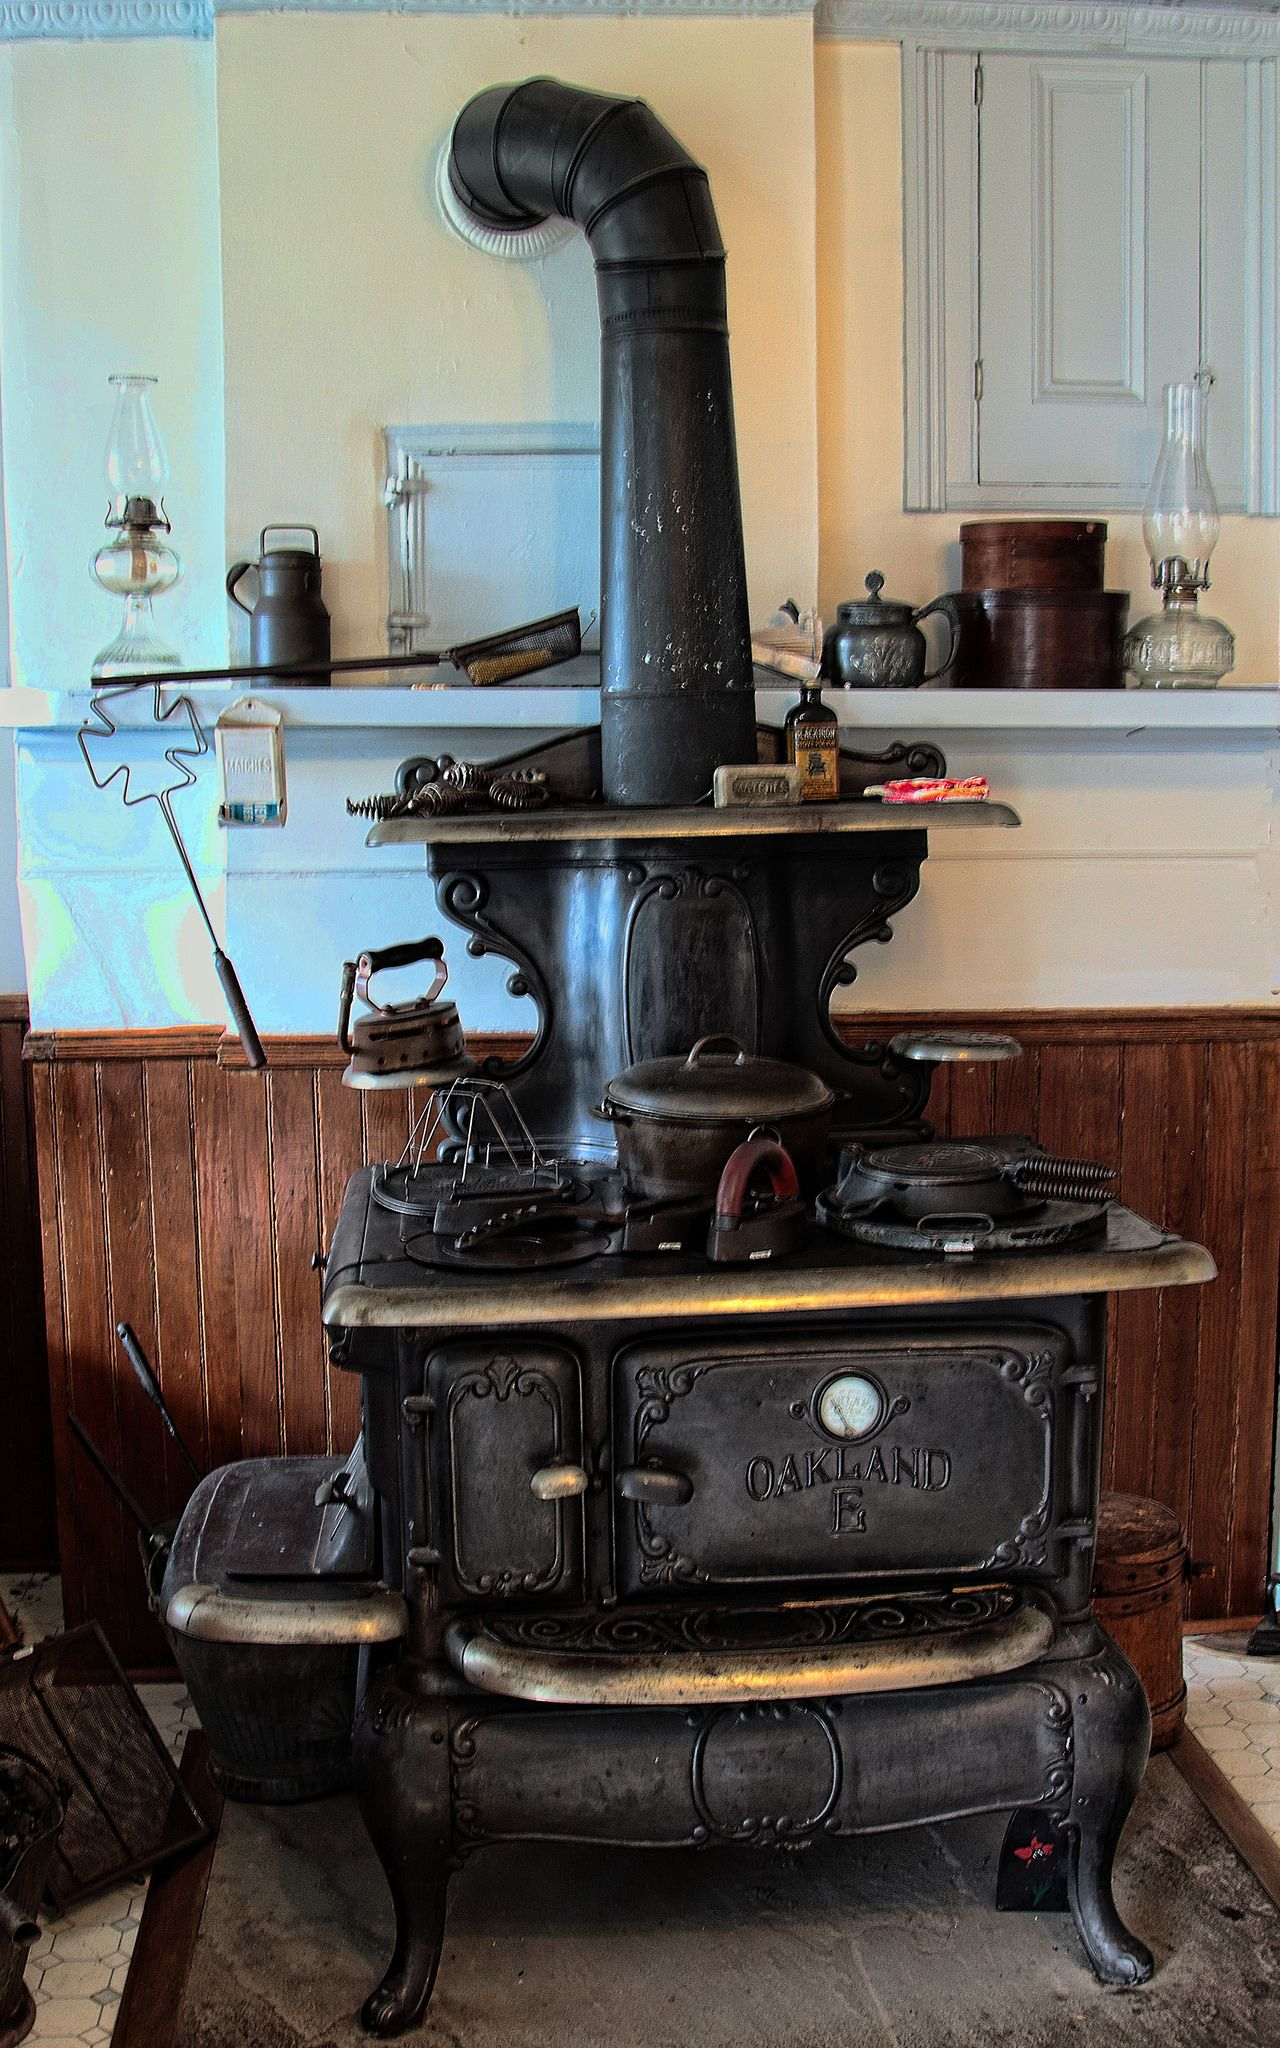 Cast Iron Stove in 2019 | Antique stove, Cast iron stove ...